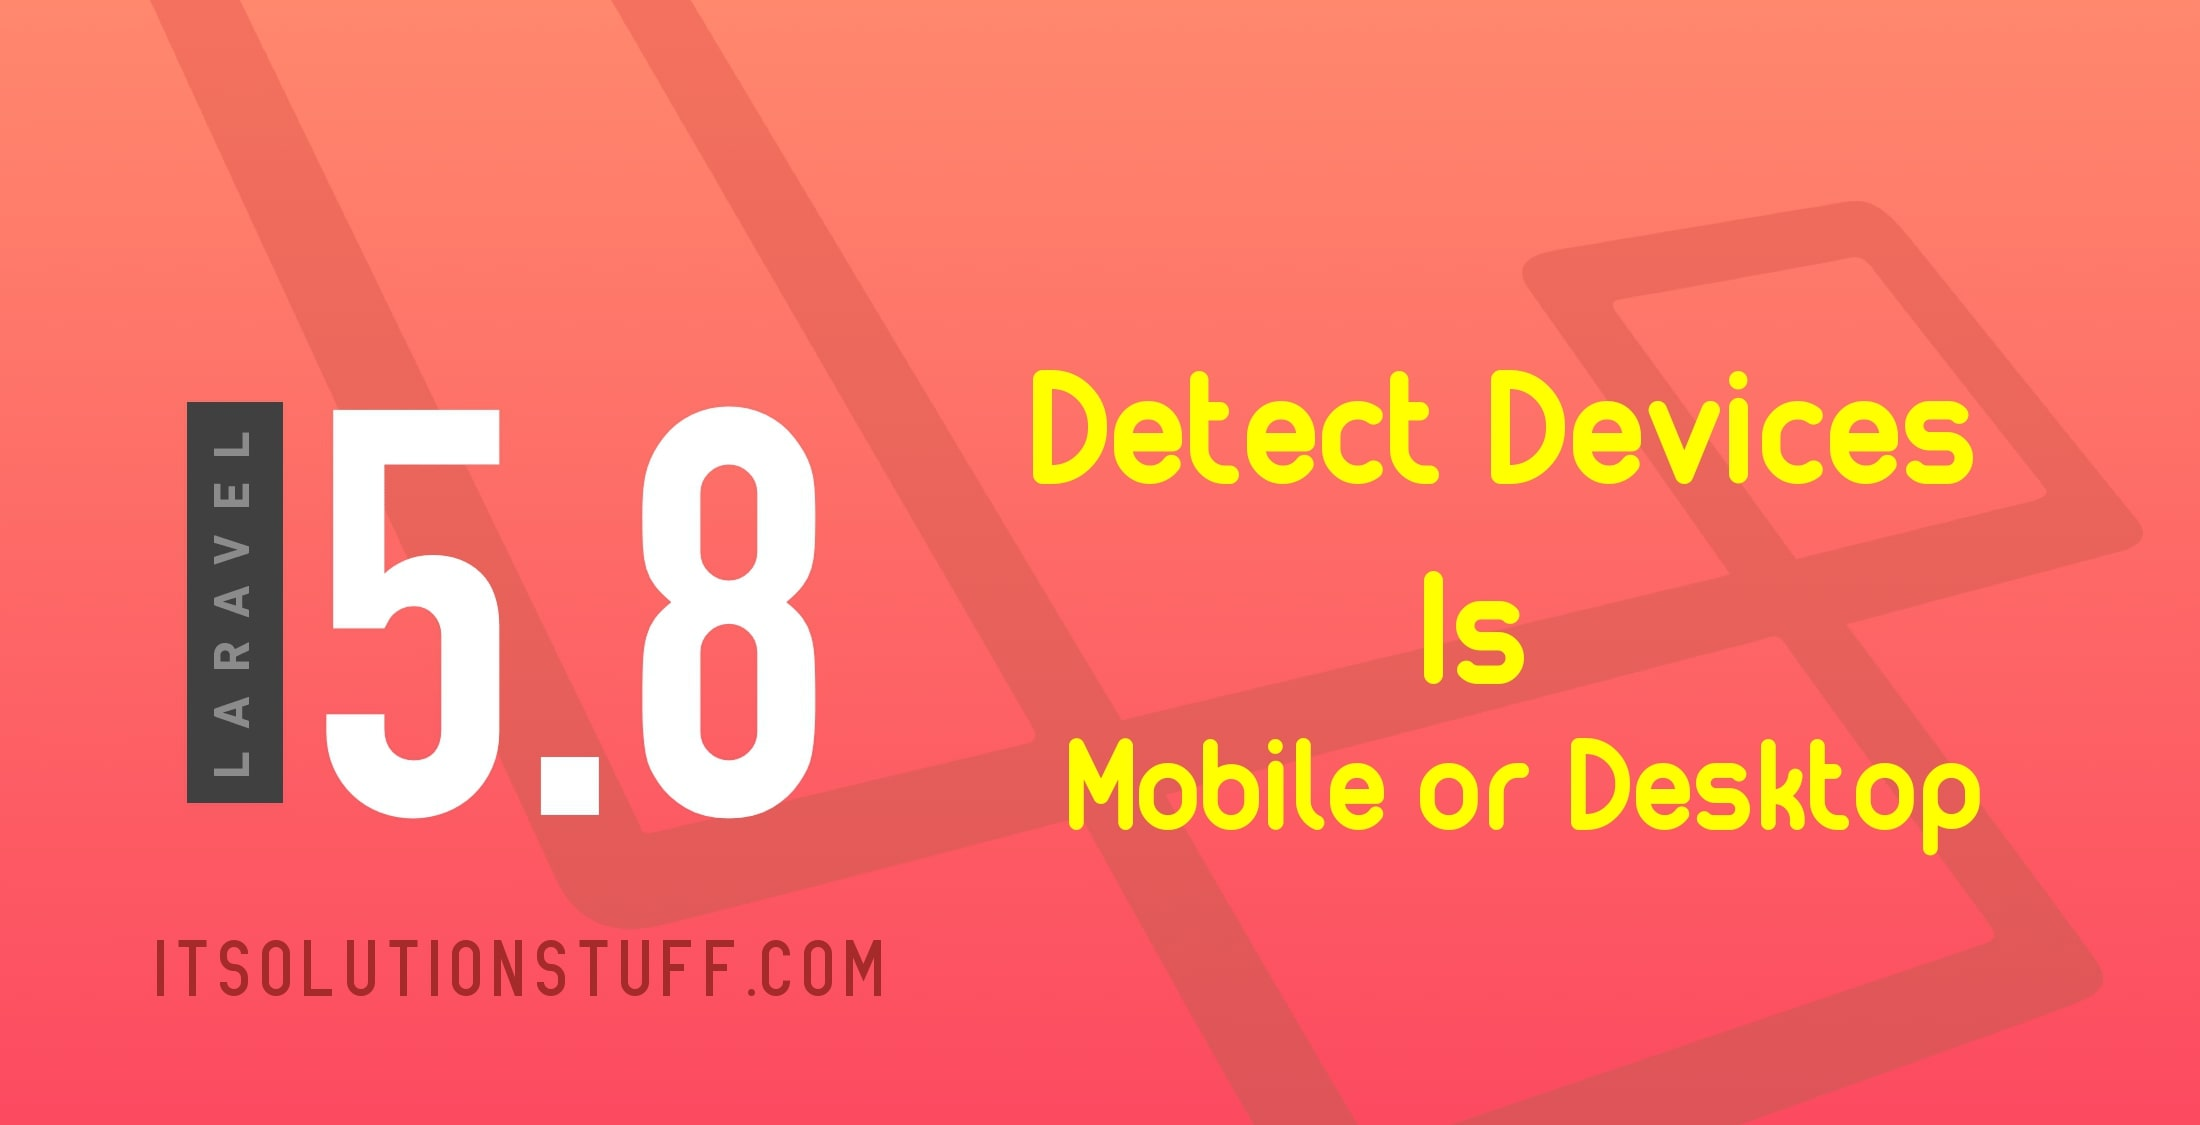 How to detect devices is mobile or desktop in Laravel?